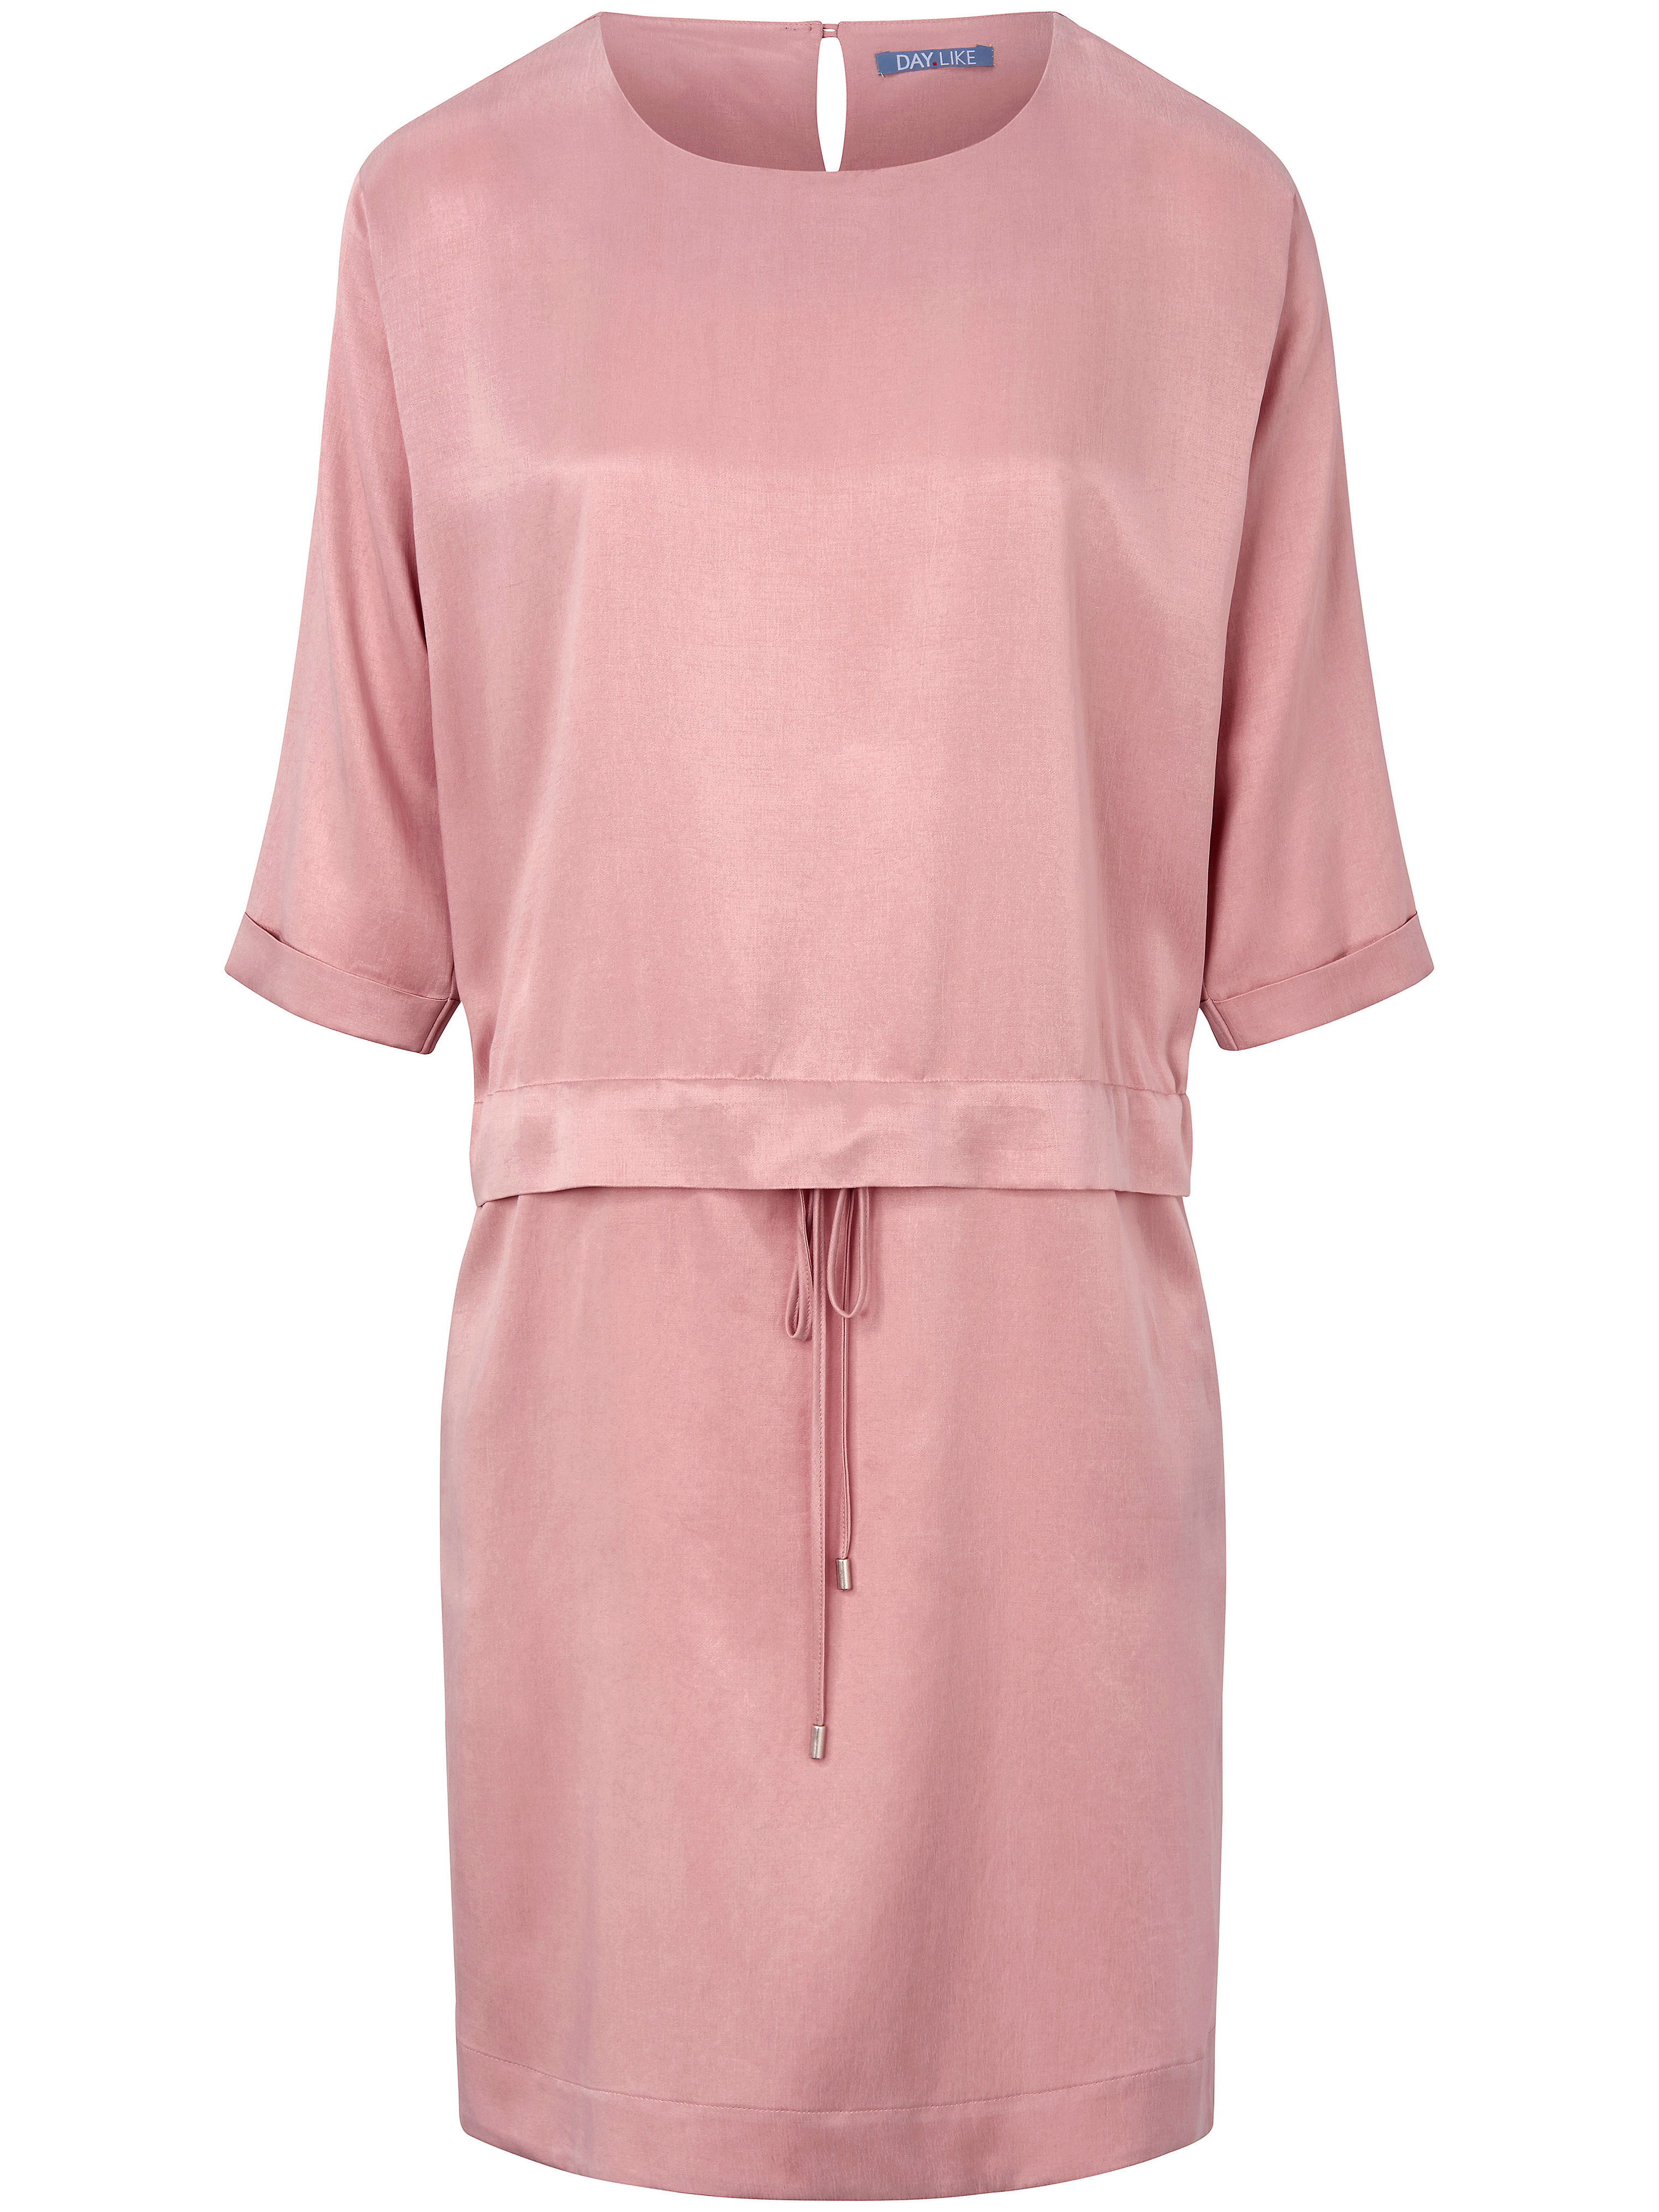 La robe manches 3/4  DAY.LIKE rose taille 48